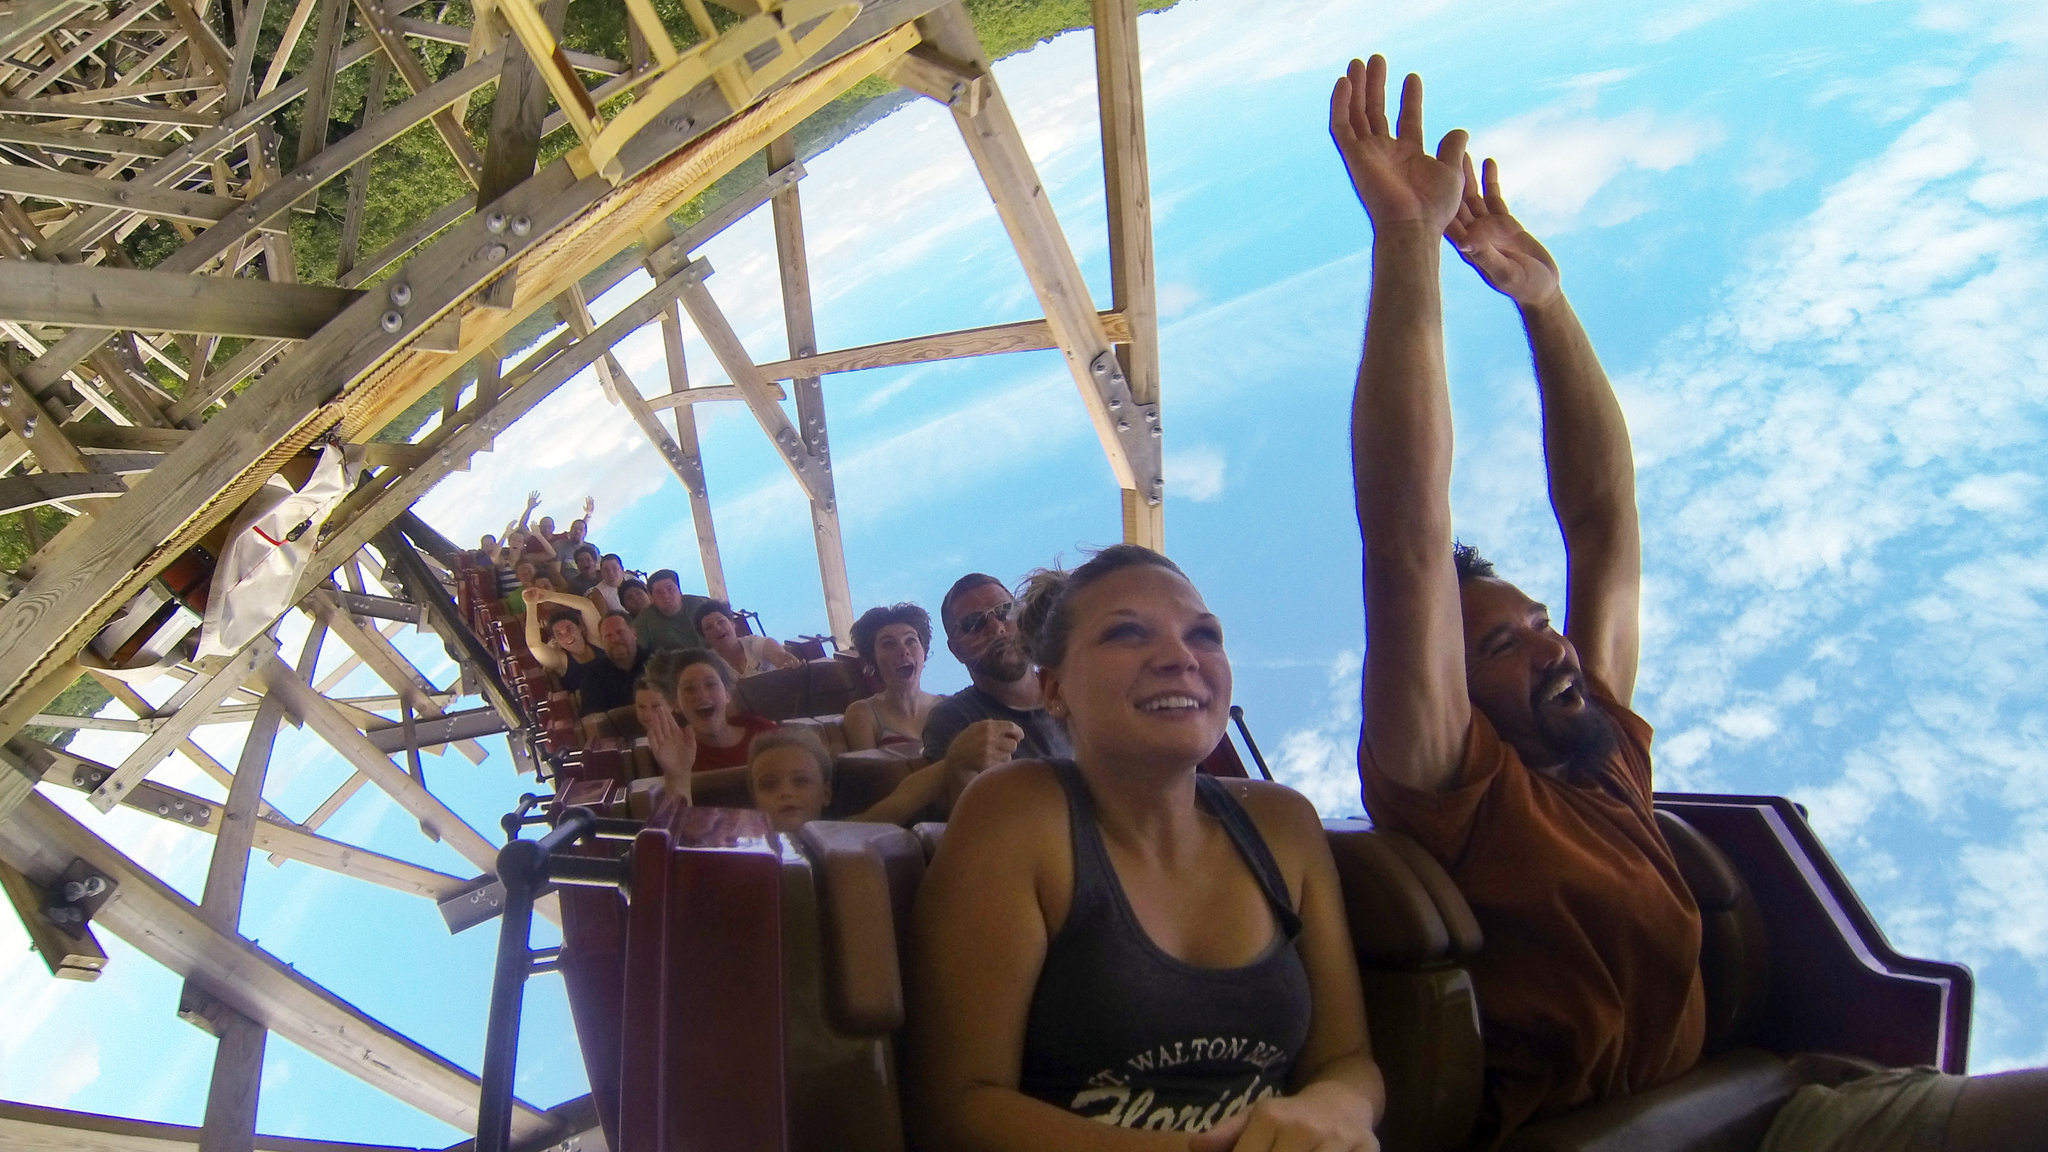 New Twists For Wooden Roller Coasters The New York Times